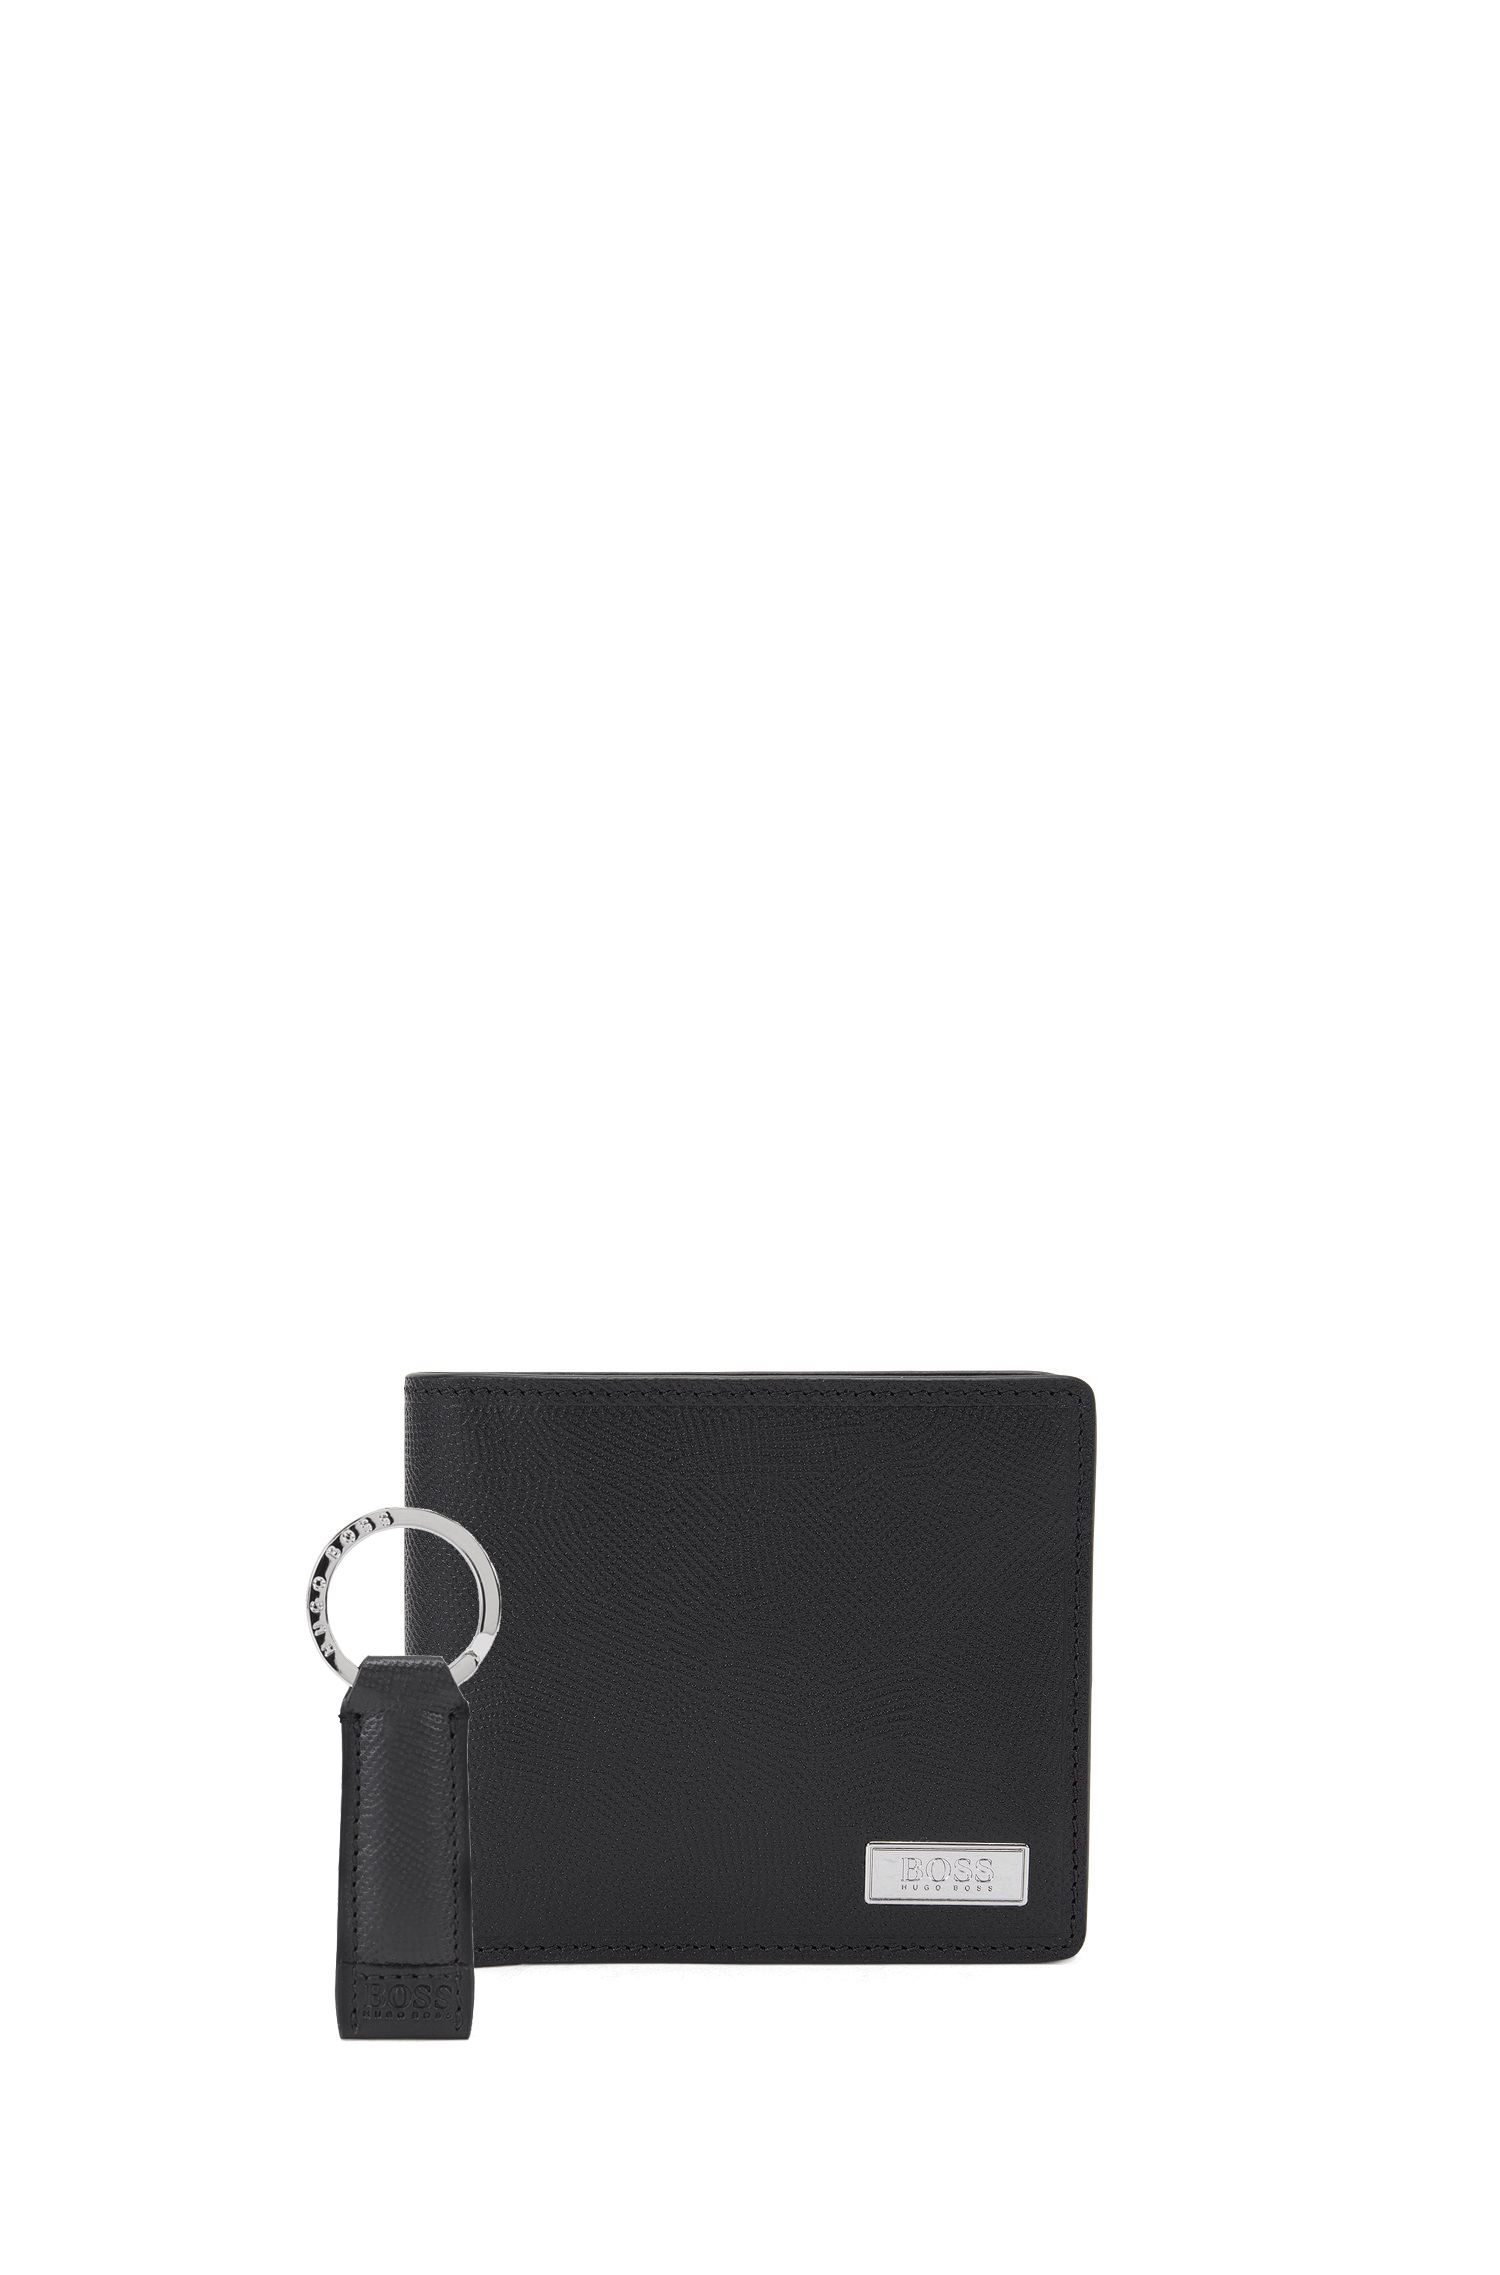 Leather Wallet & Key Ring Gift Set | Coin Key